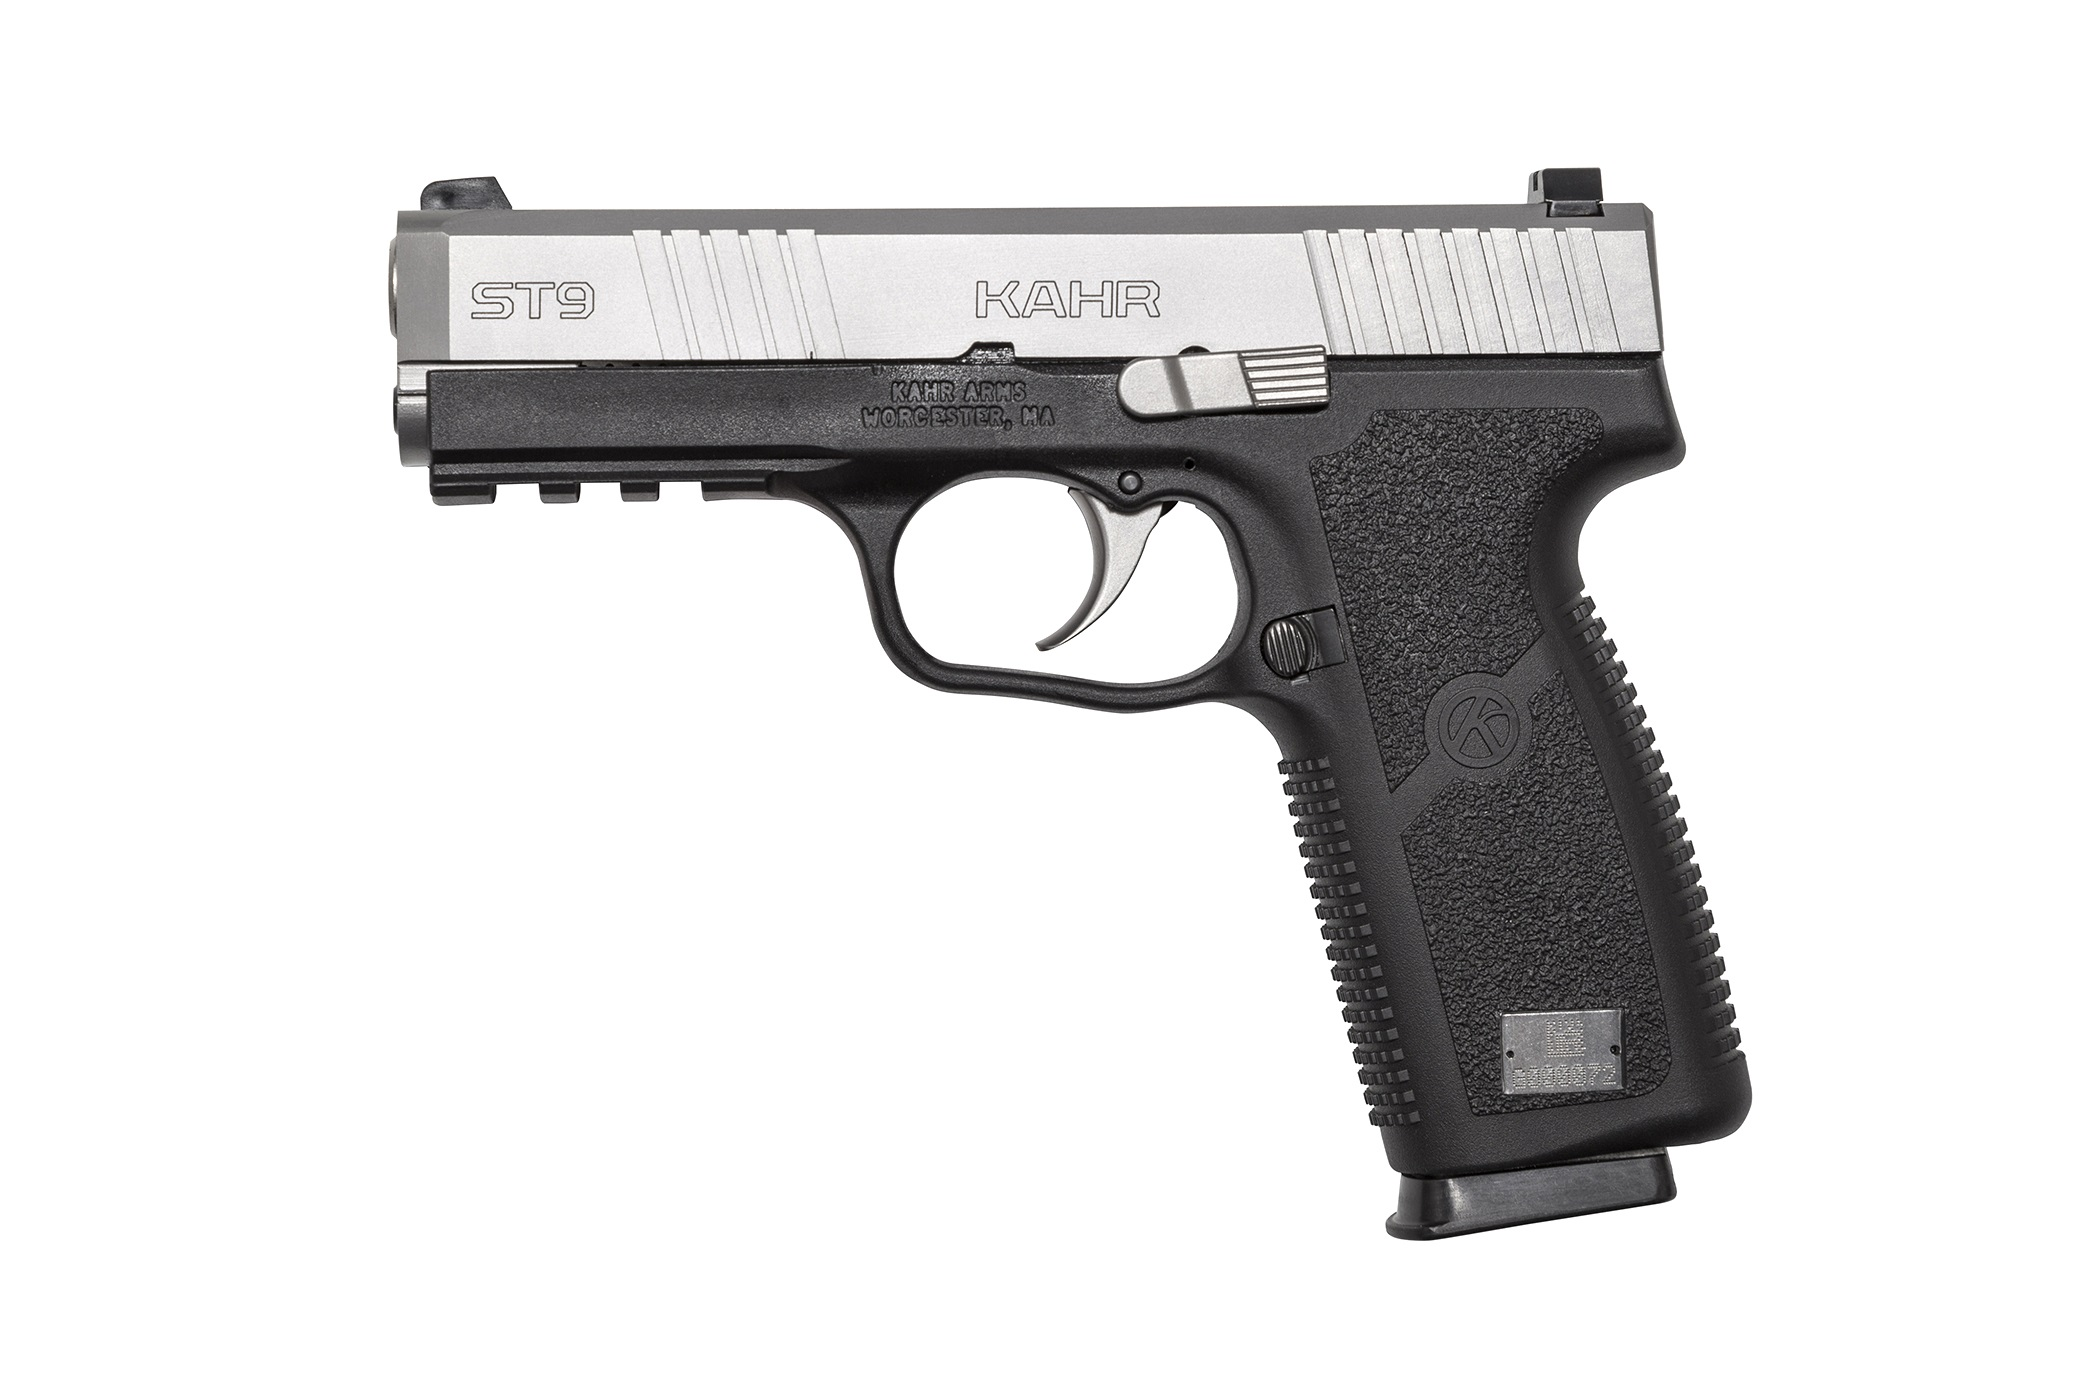 Kahr Arms ST9 9MM